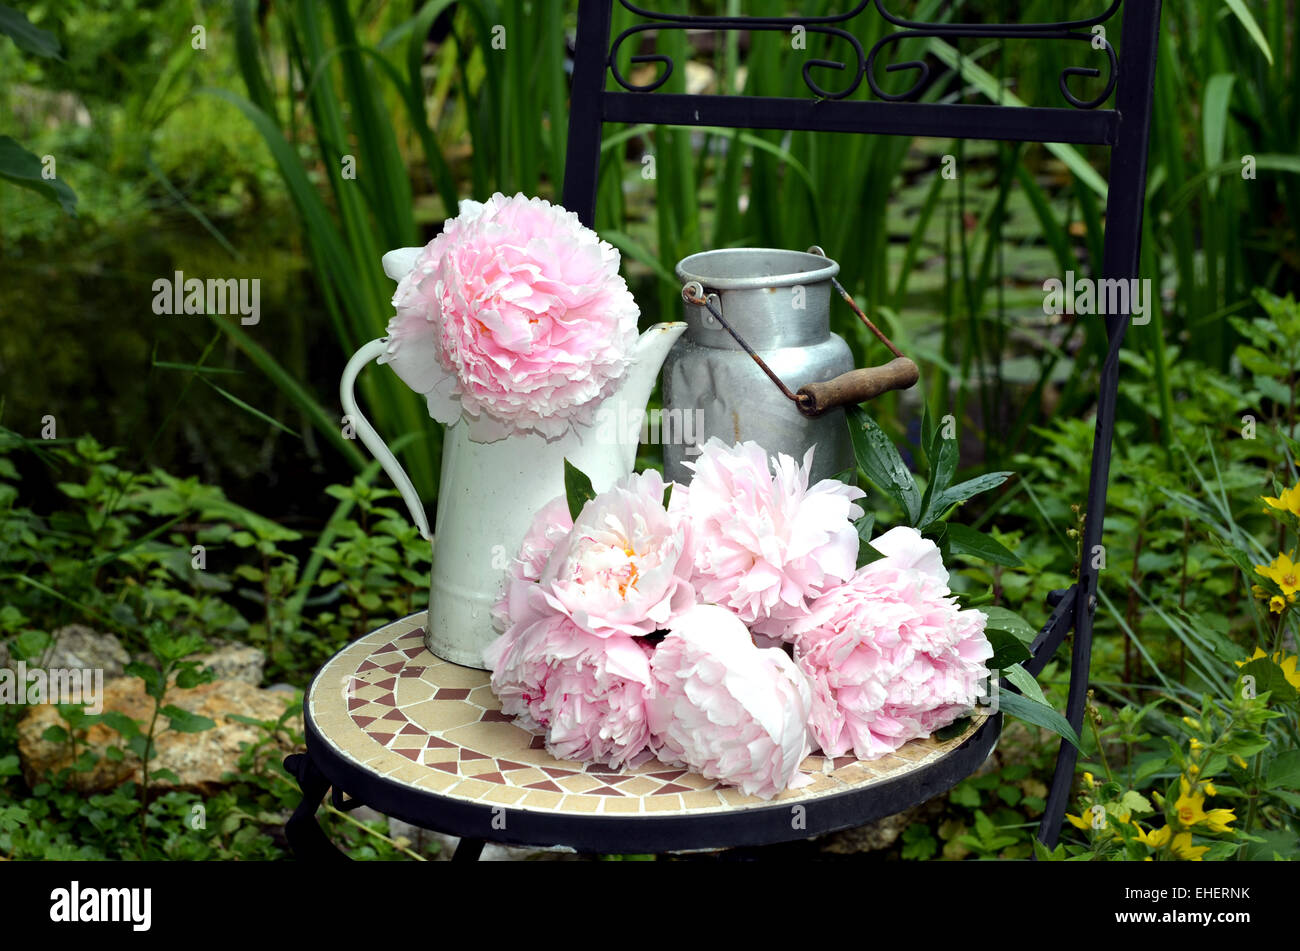 shabby chic blumen garten pfingstrosen stockfoto bild 79616591 alamy. Black Bedroom Furniture Sets. Home Design Ideas